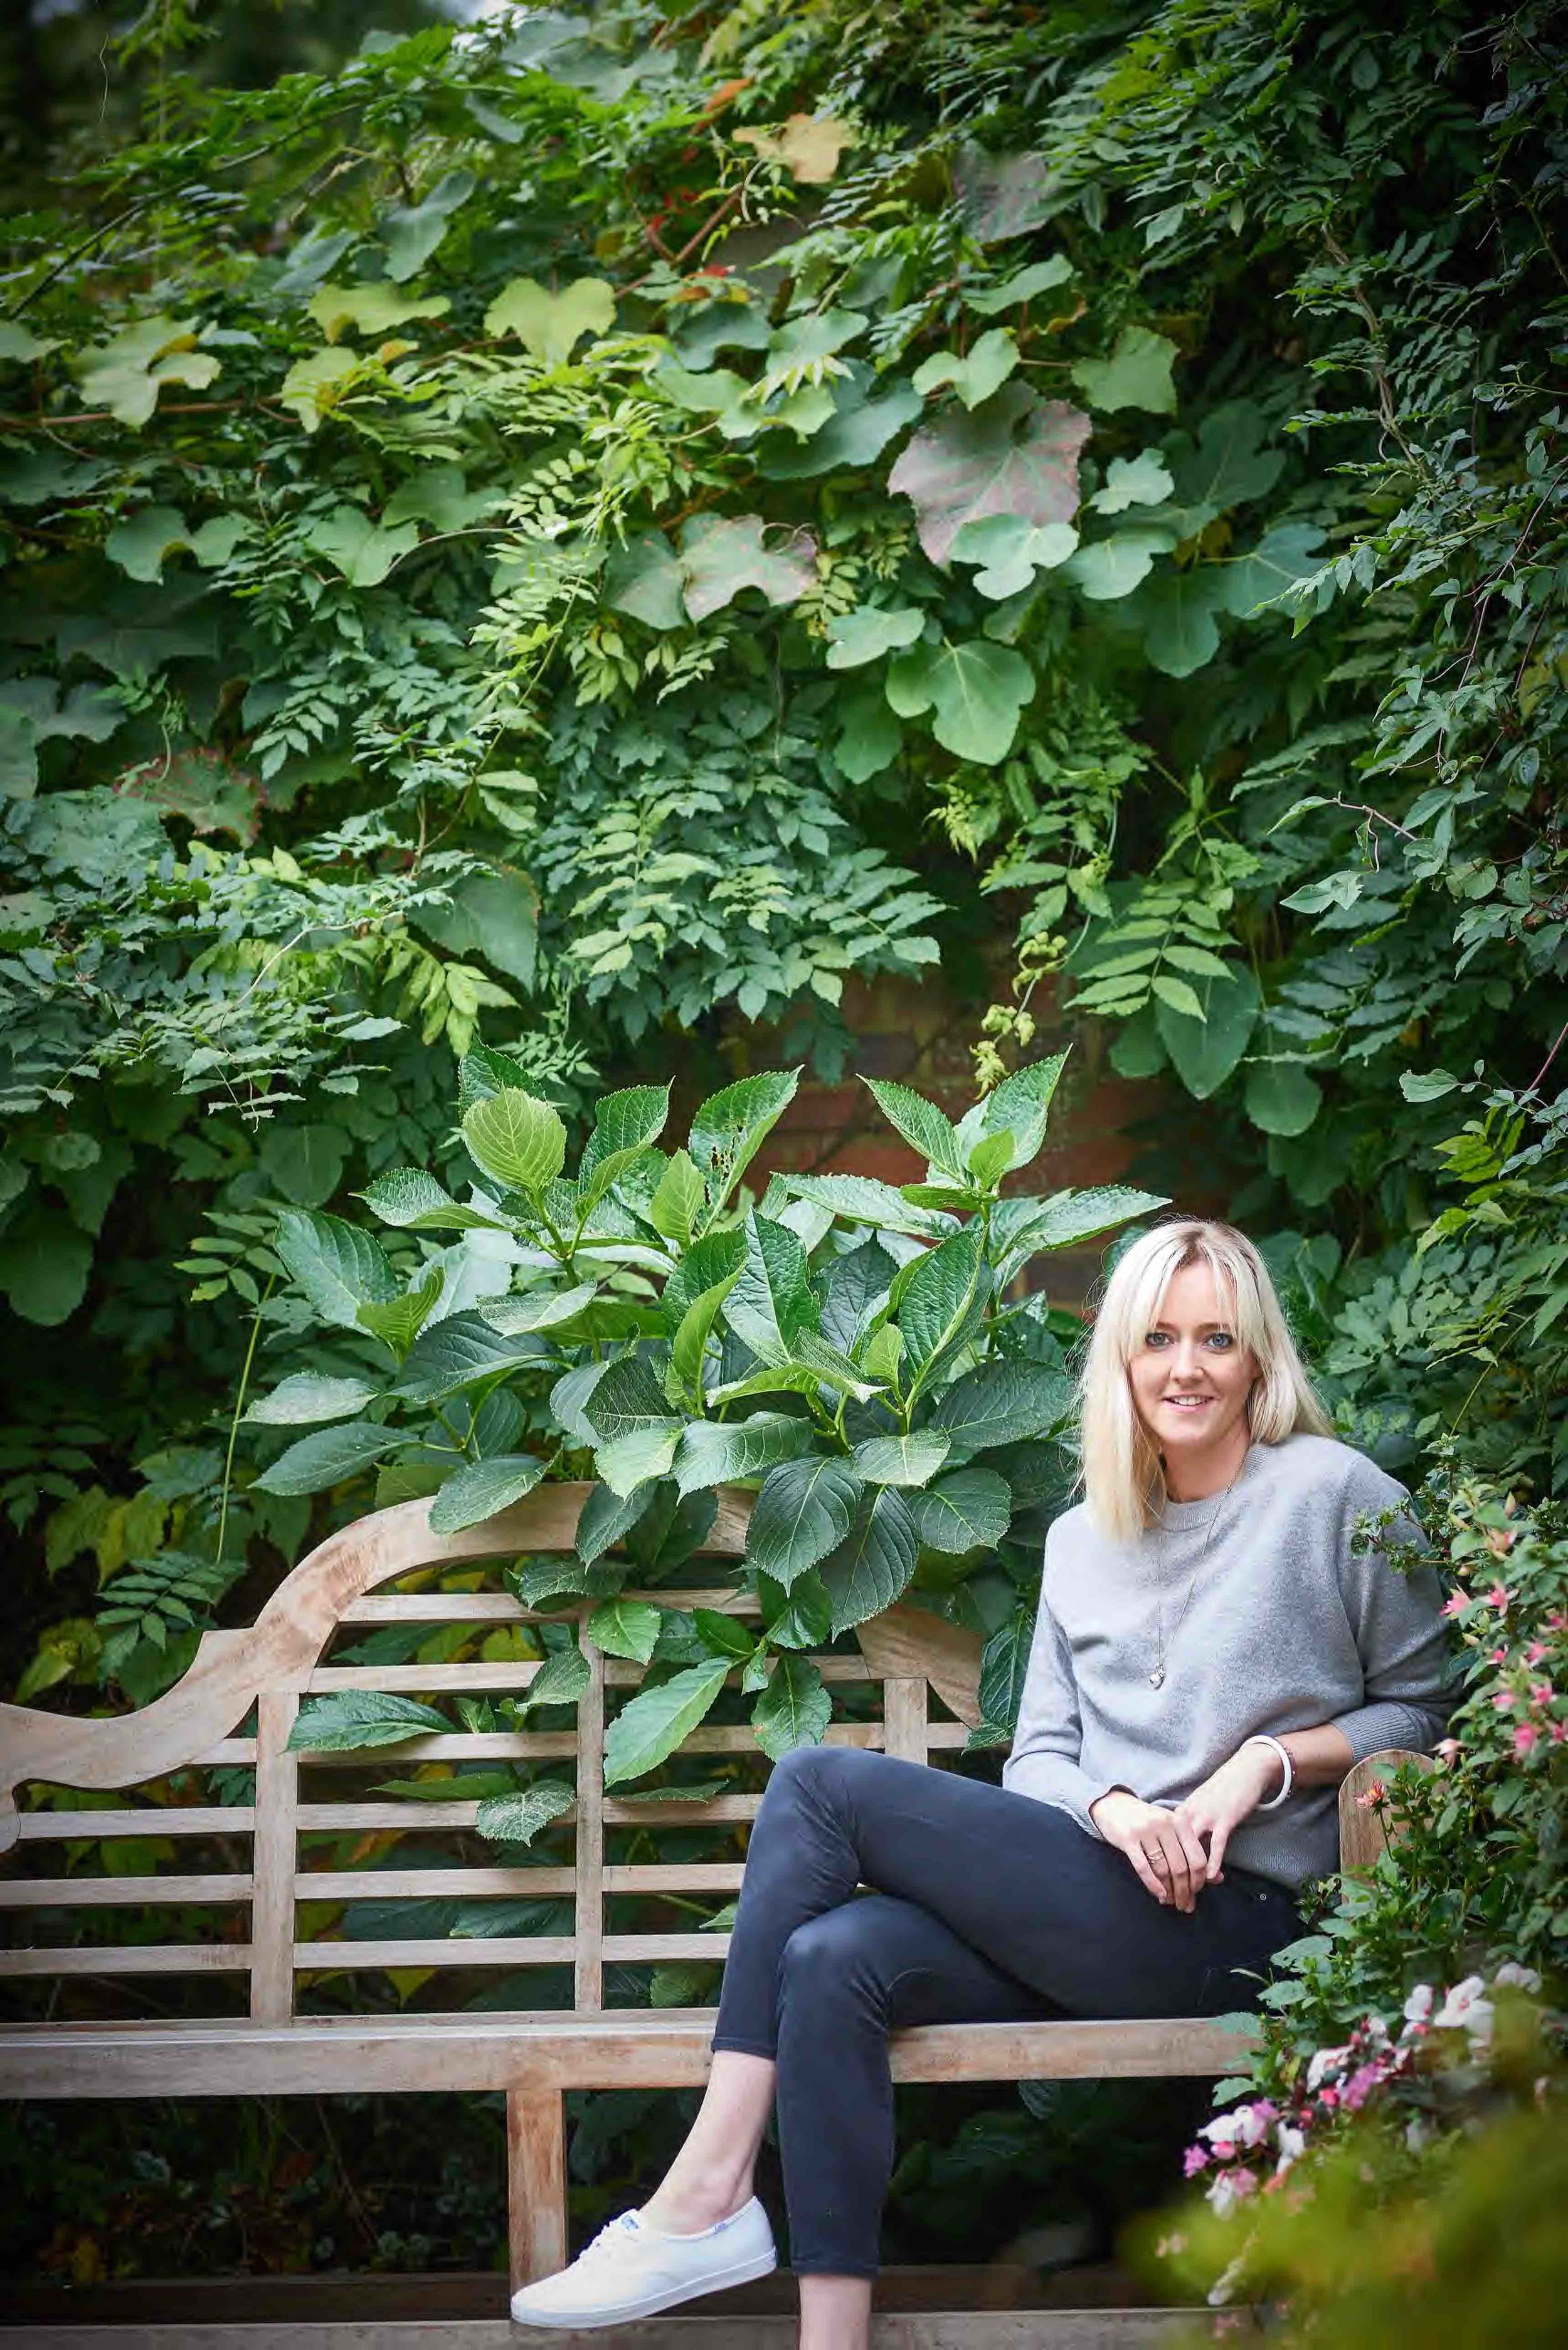 Bonnie Stowell, founder of Spring Green London